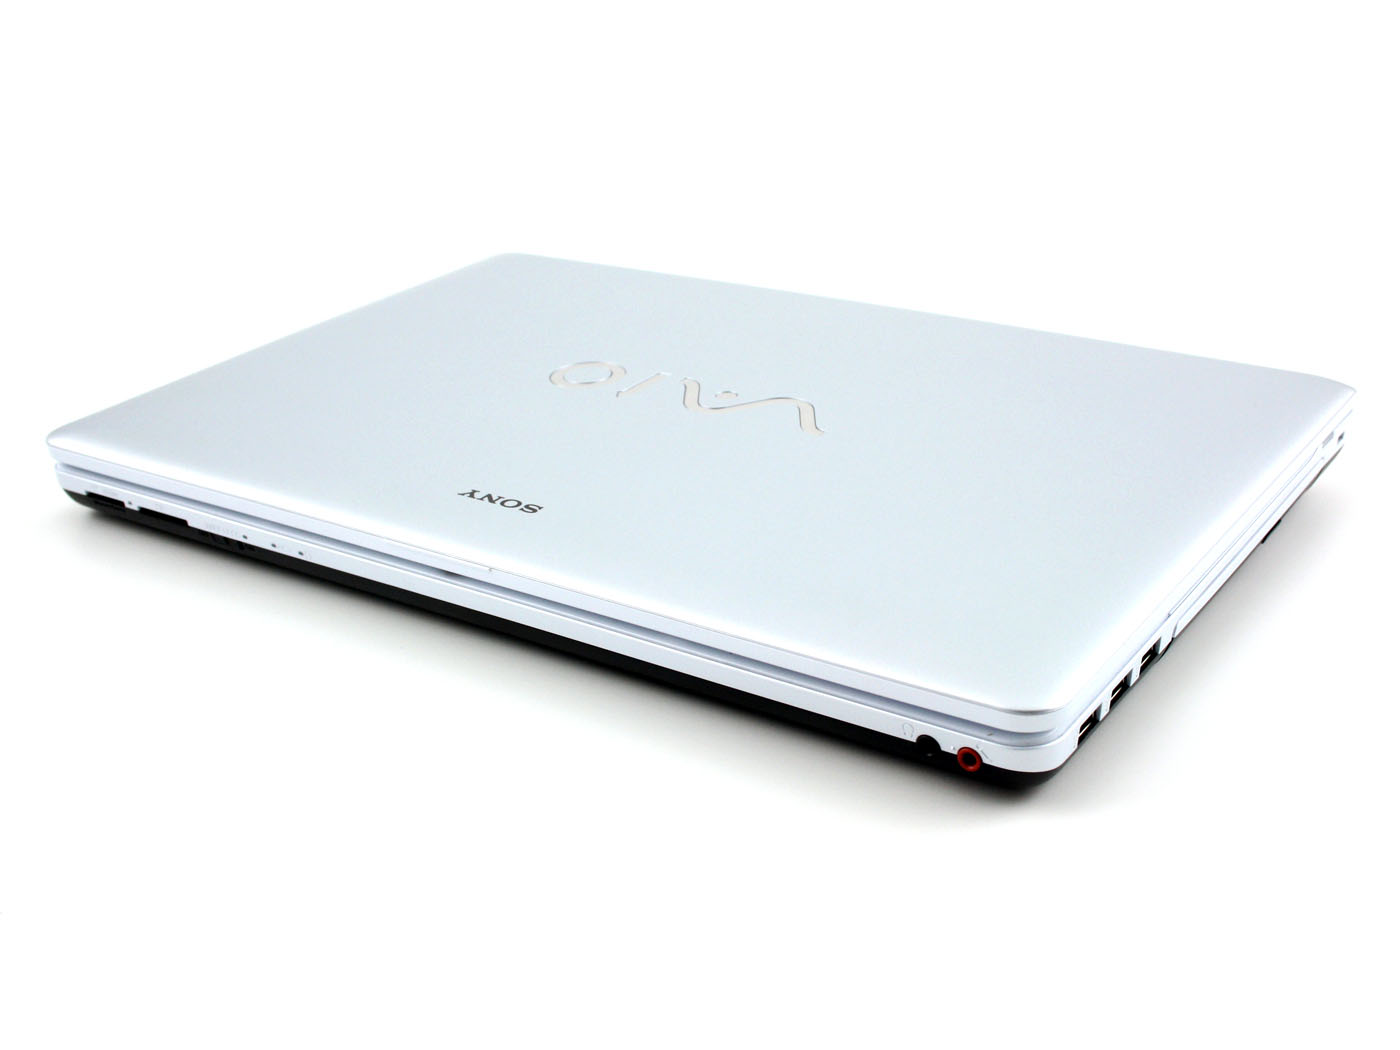 Sony Vaio VPCEC25FX/WI Marvell Atheros AR9285 WLAN Download Drivers